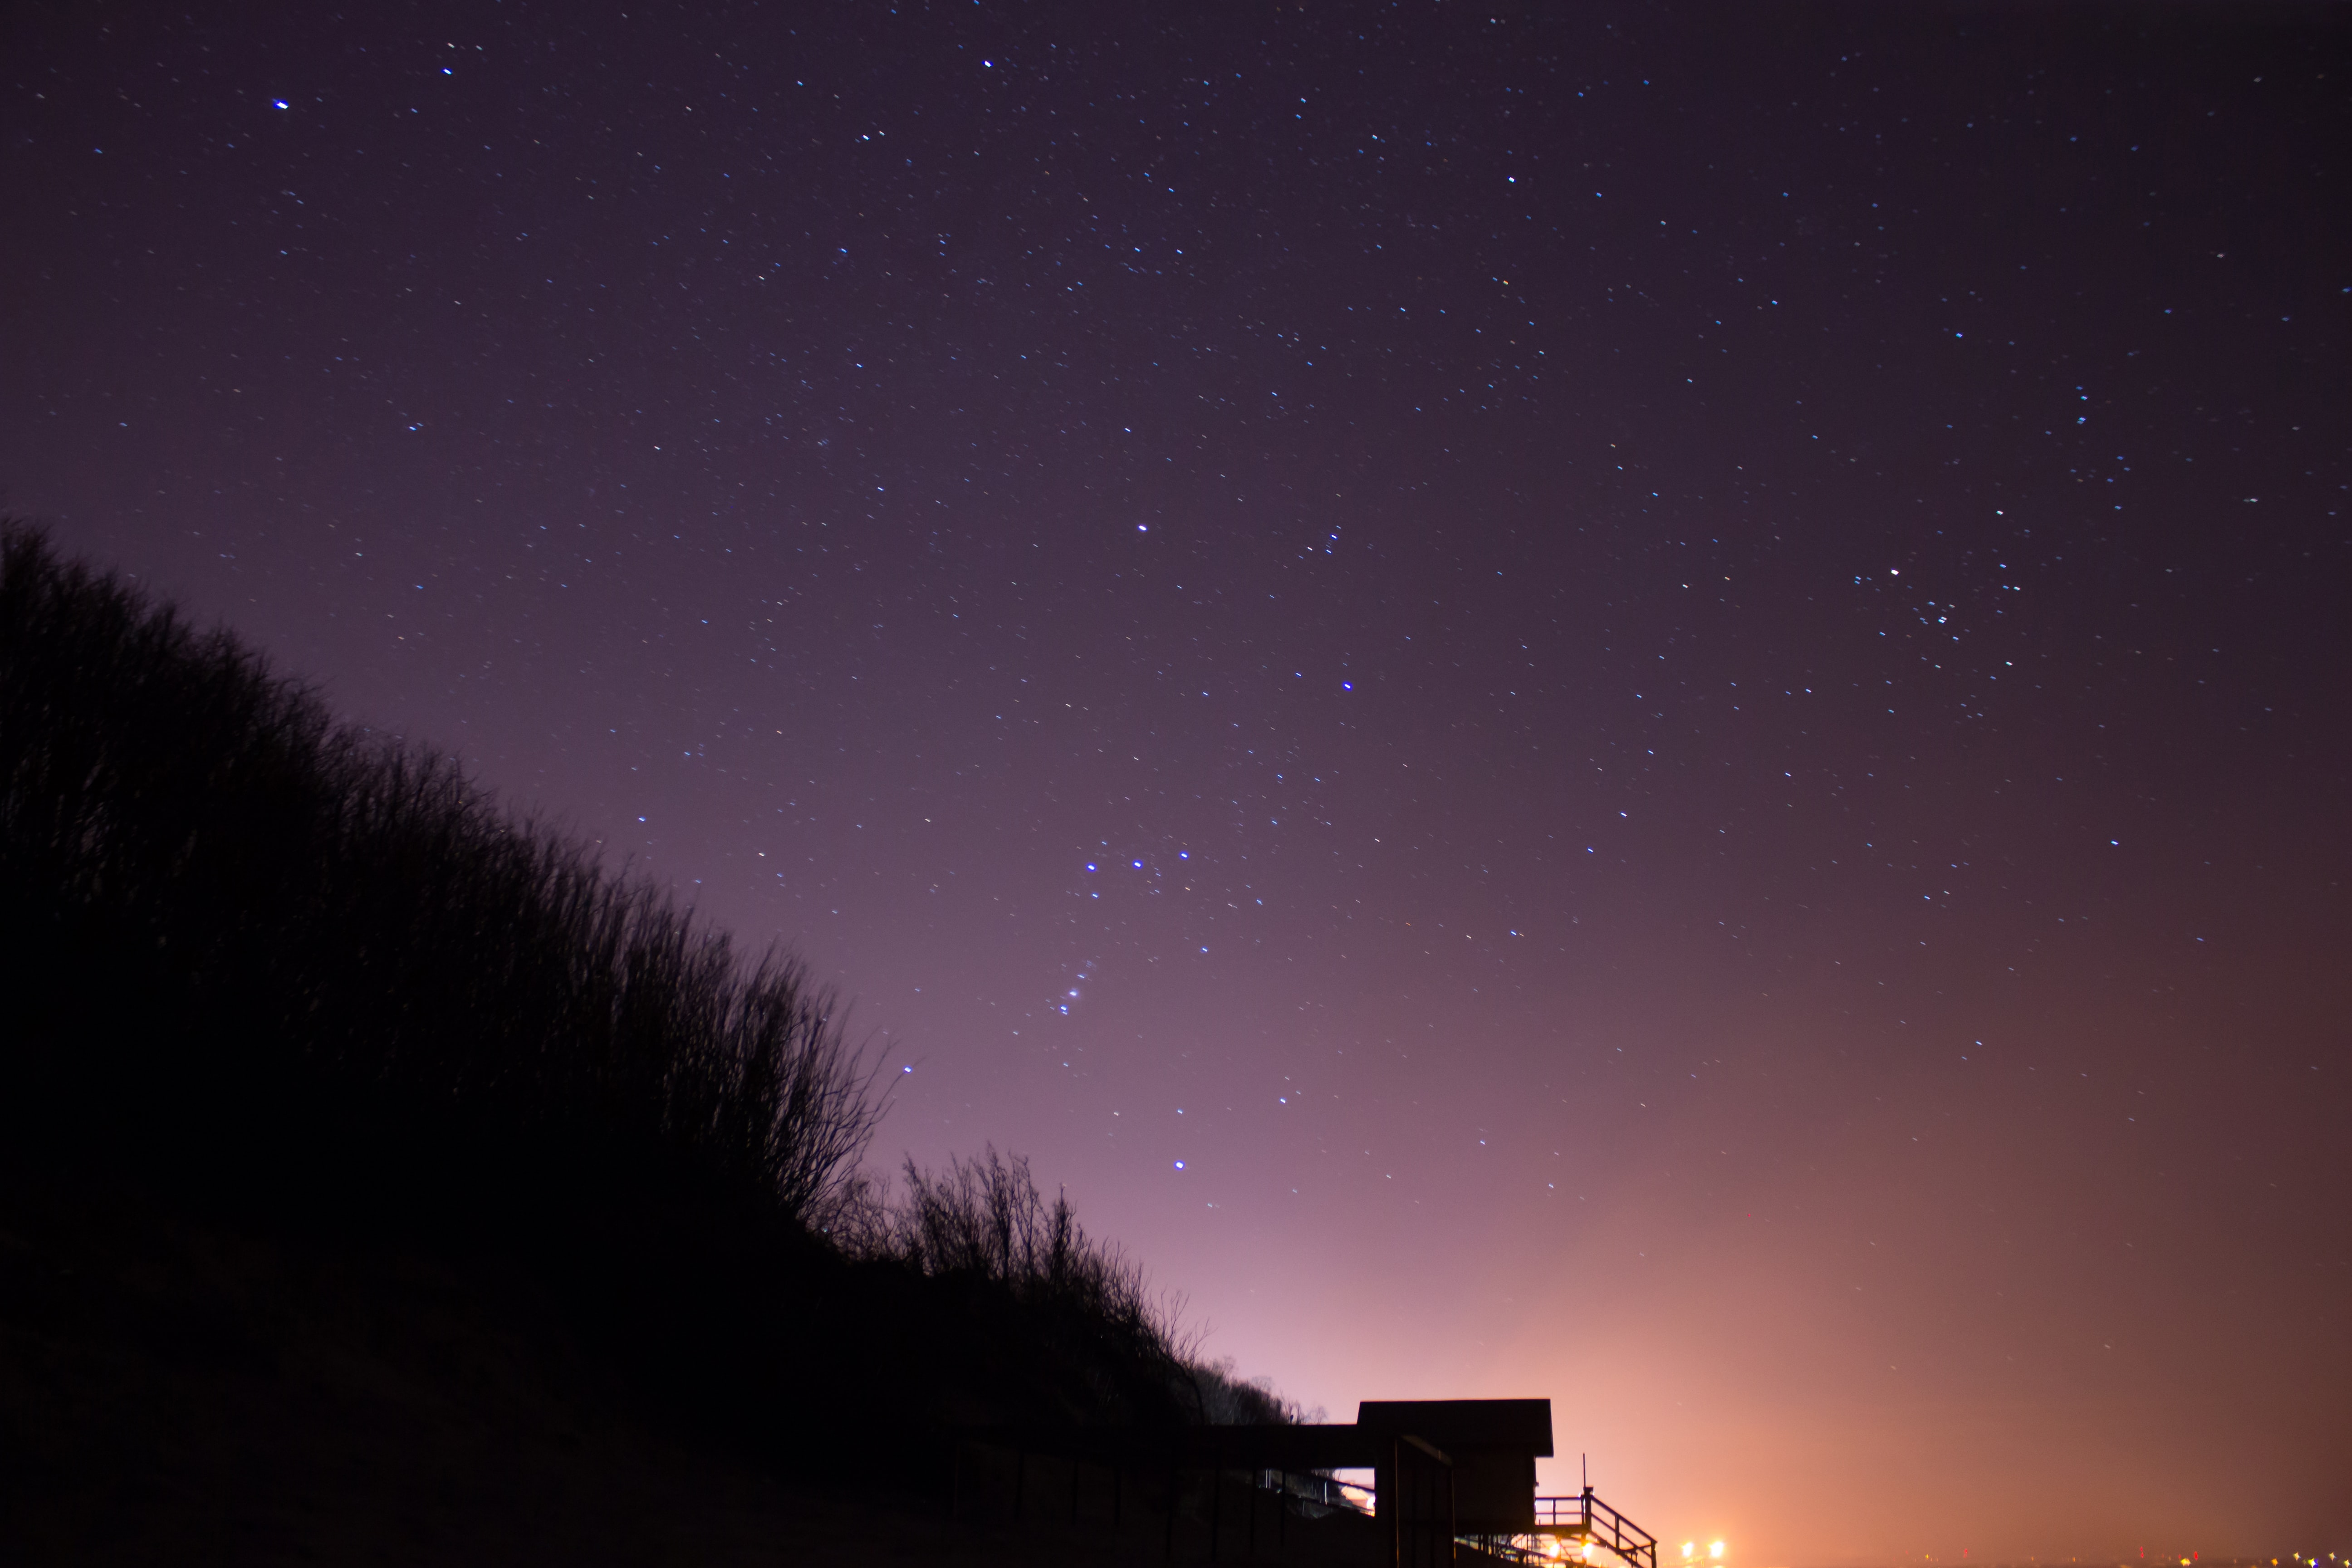 silhouette of shed on mountain under starry sky